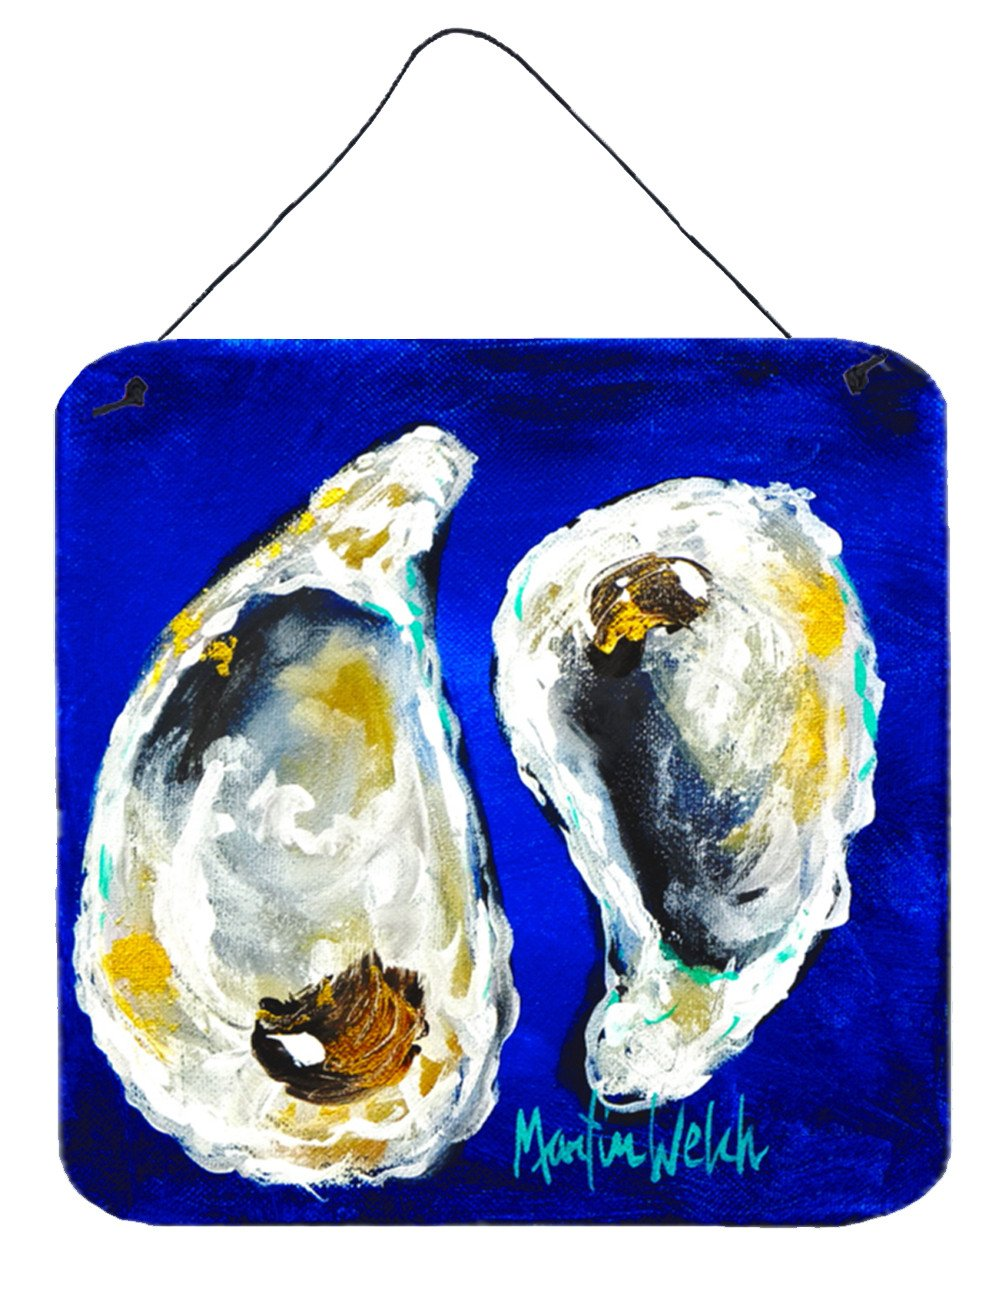 Buy this Oyster I Hear You Aluminium Metal Wall or Door Hanging Prints